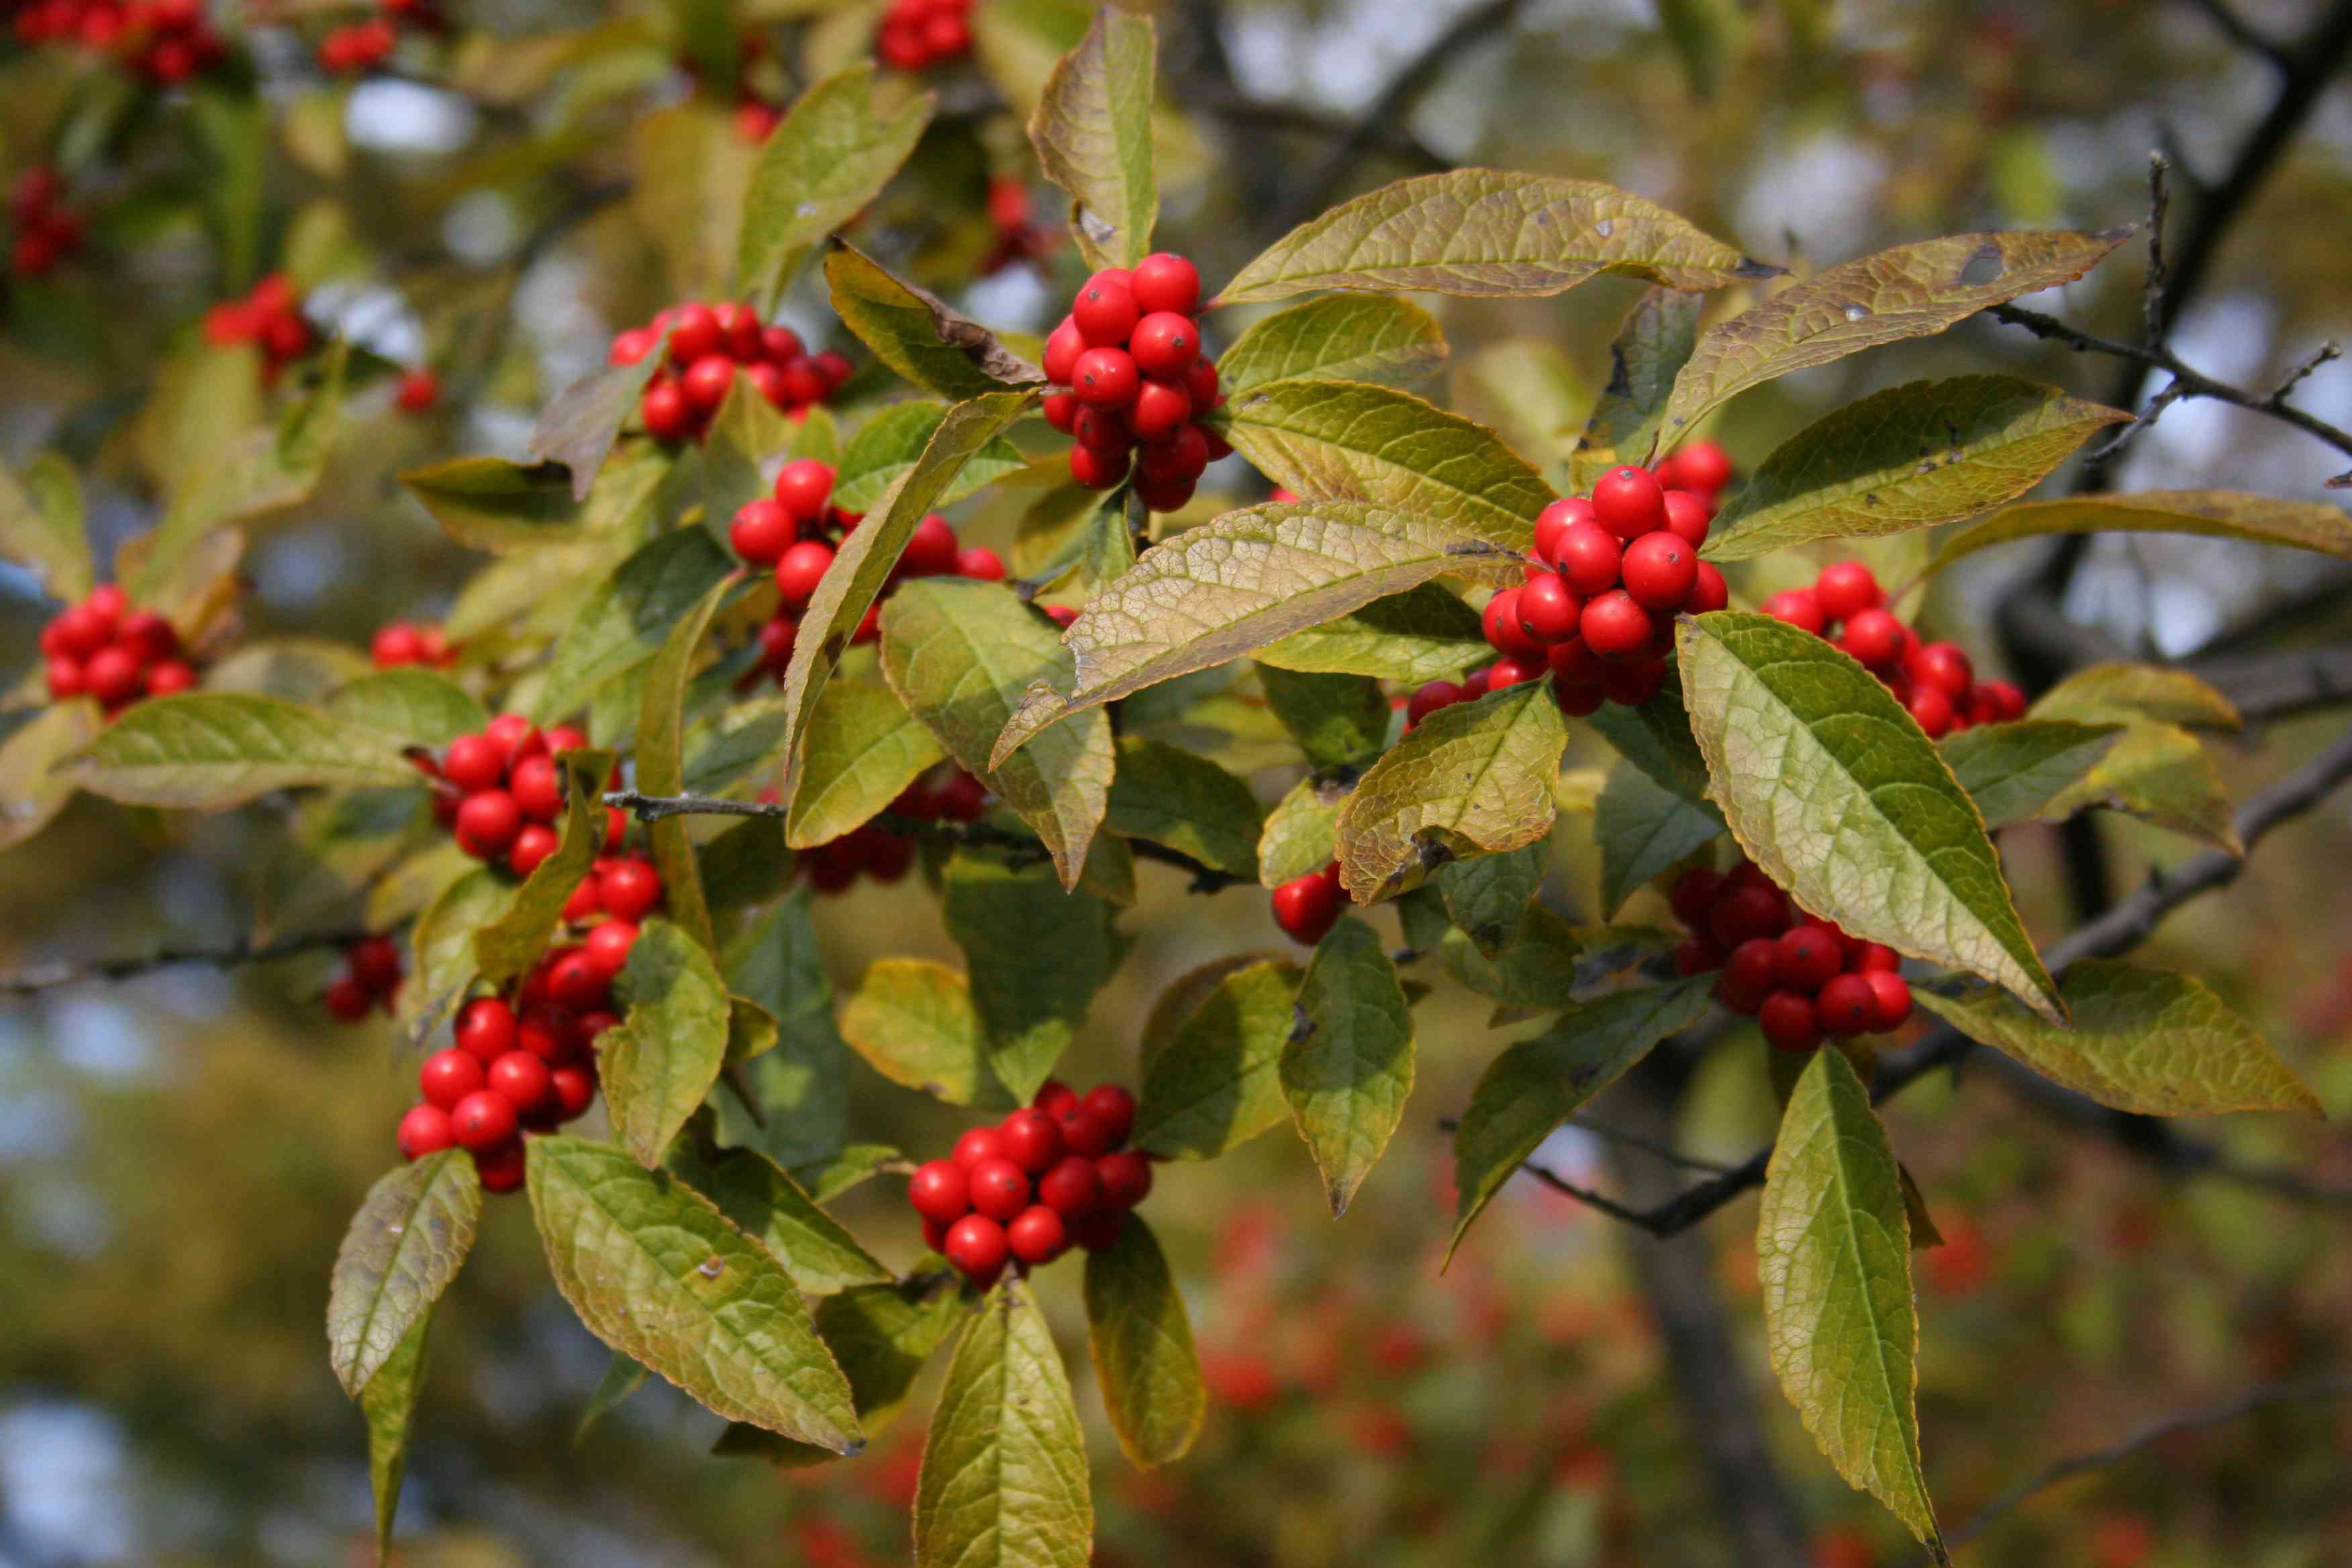 winterberry holly with green leaves and red berries